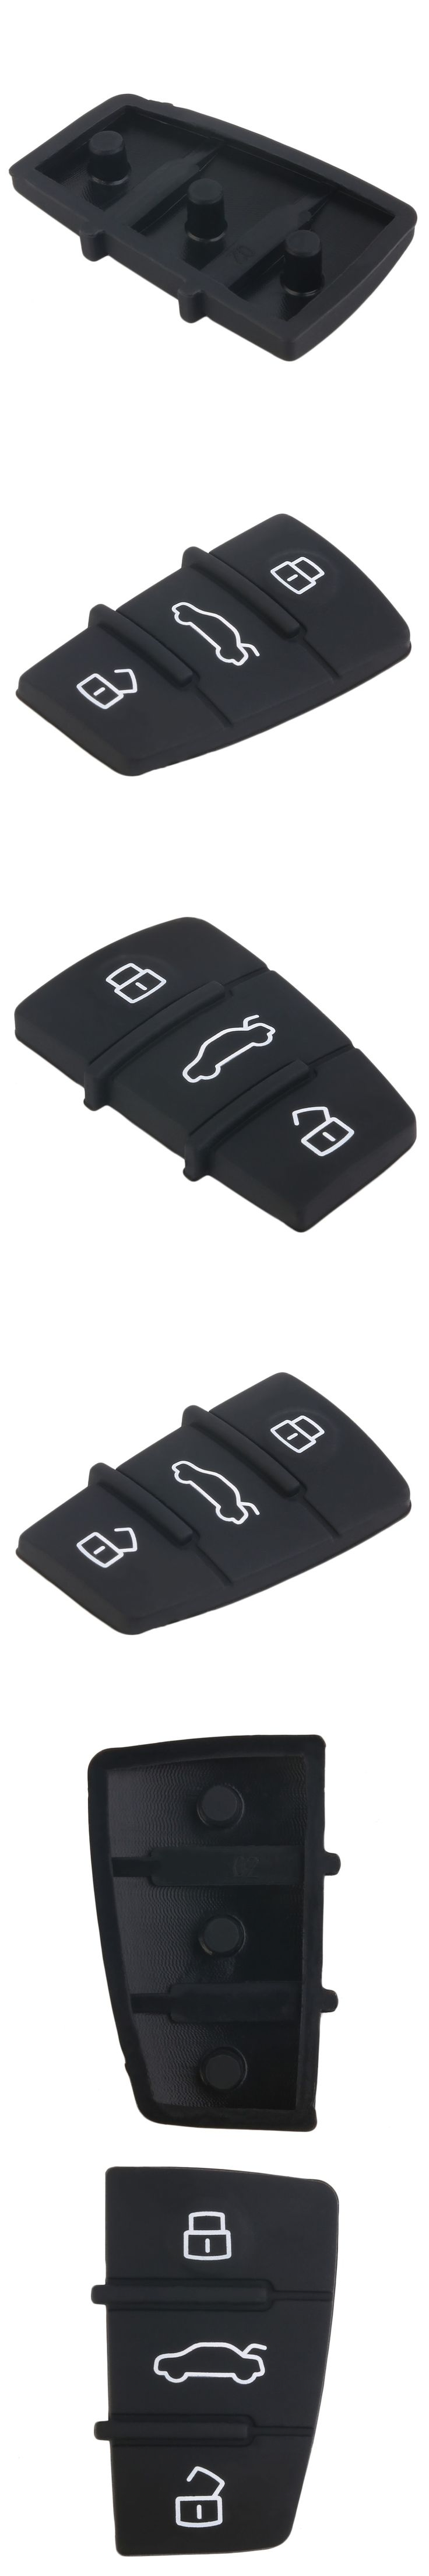 3 Button Replacement Pad Rubber Remote Key Fob For Audi A3 A4 A5 A6 A8 Q5 Q7 TT S LINE RS Free Shipping